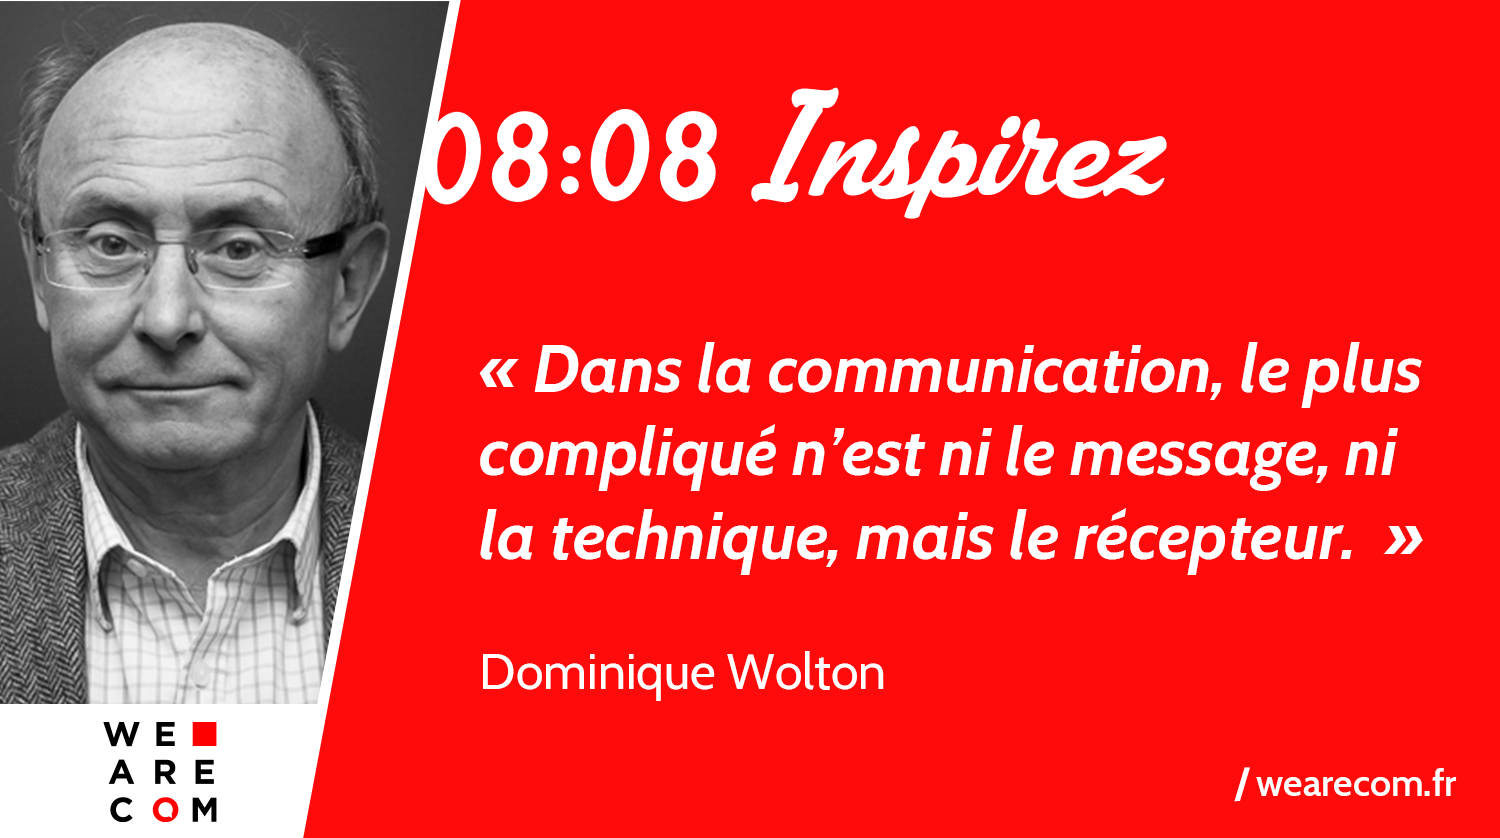 Citation_Dominique_Wolton_Communication_WeAreCOM